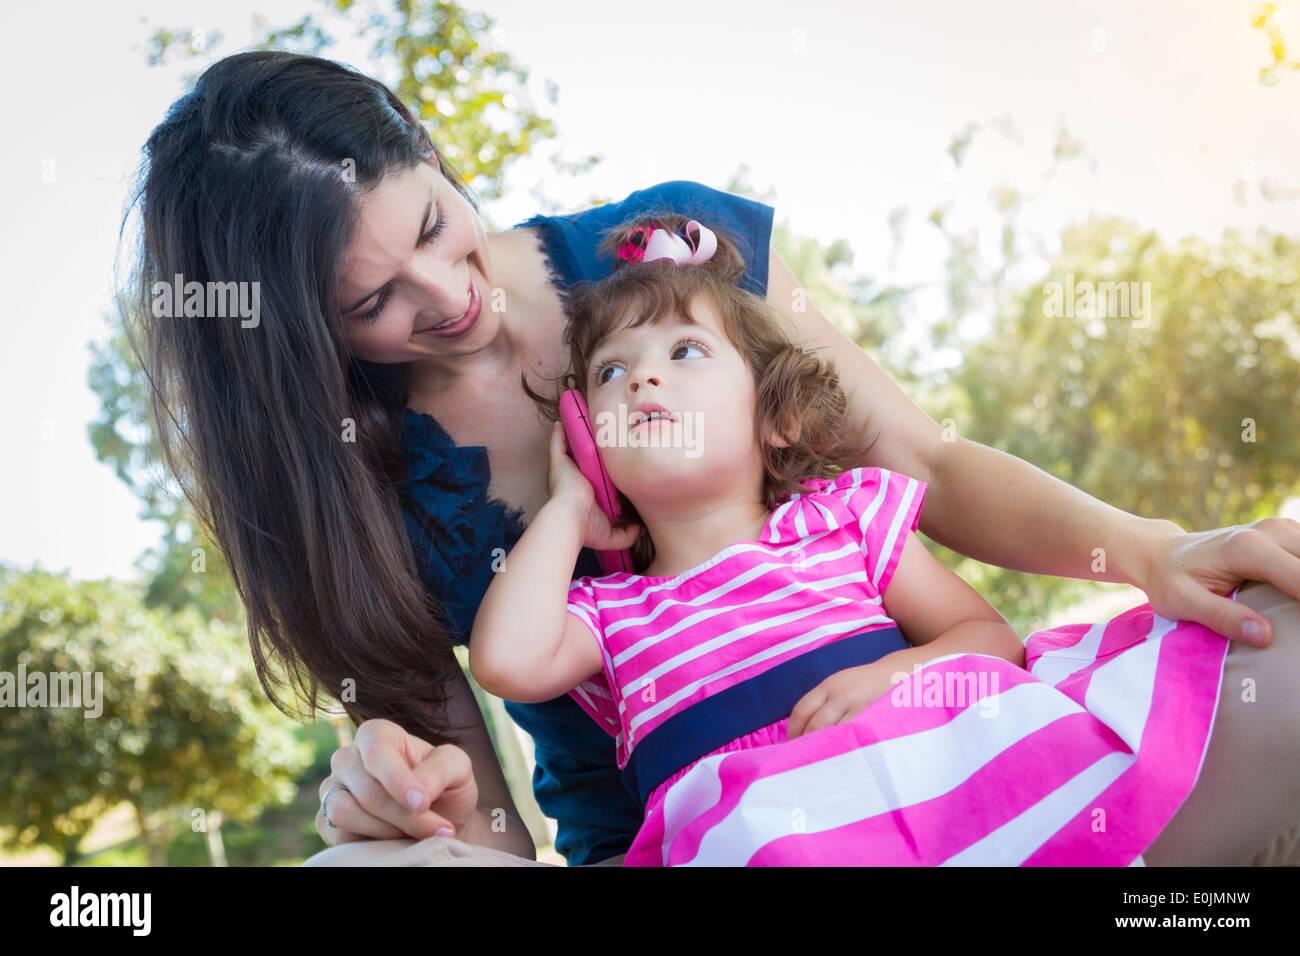 Mixed Race Mother and Cute Baby Daughter Playing with Cell Phone in Park. - Stock Image